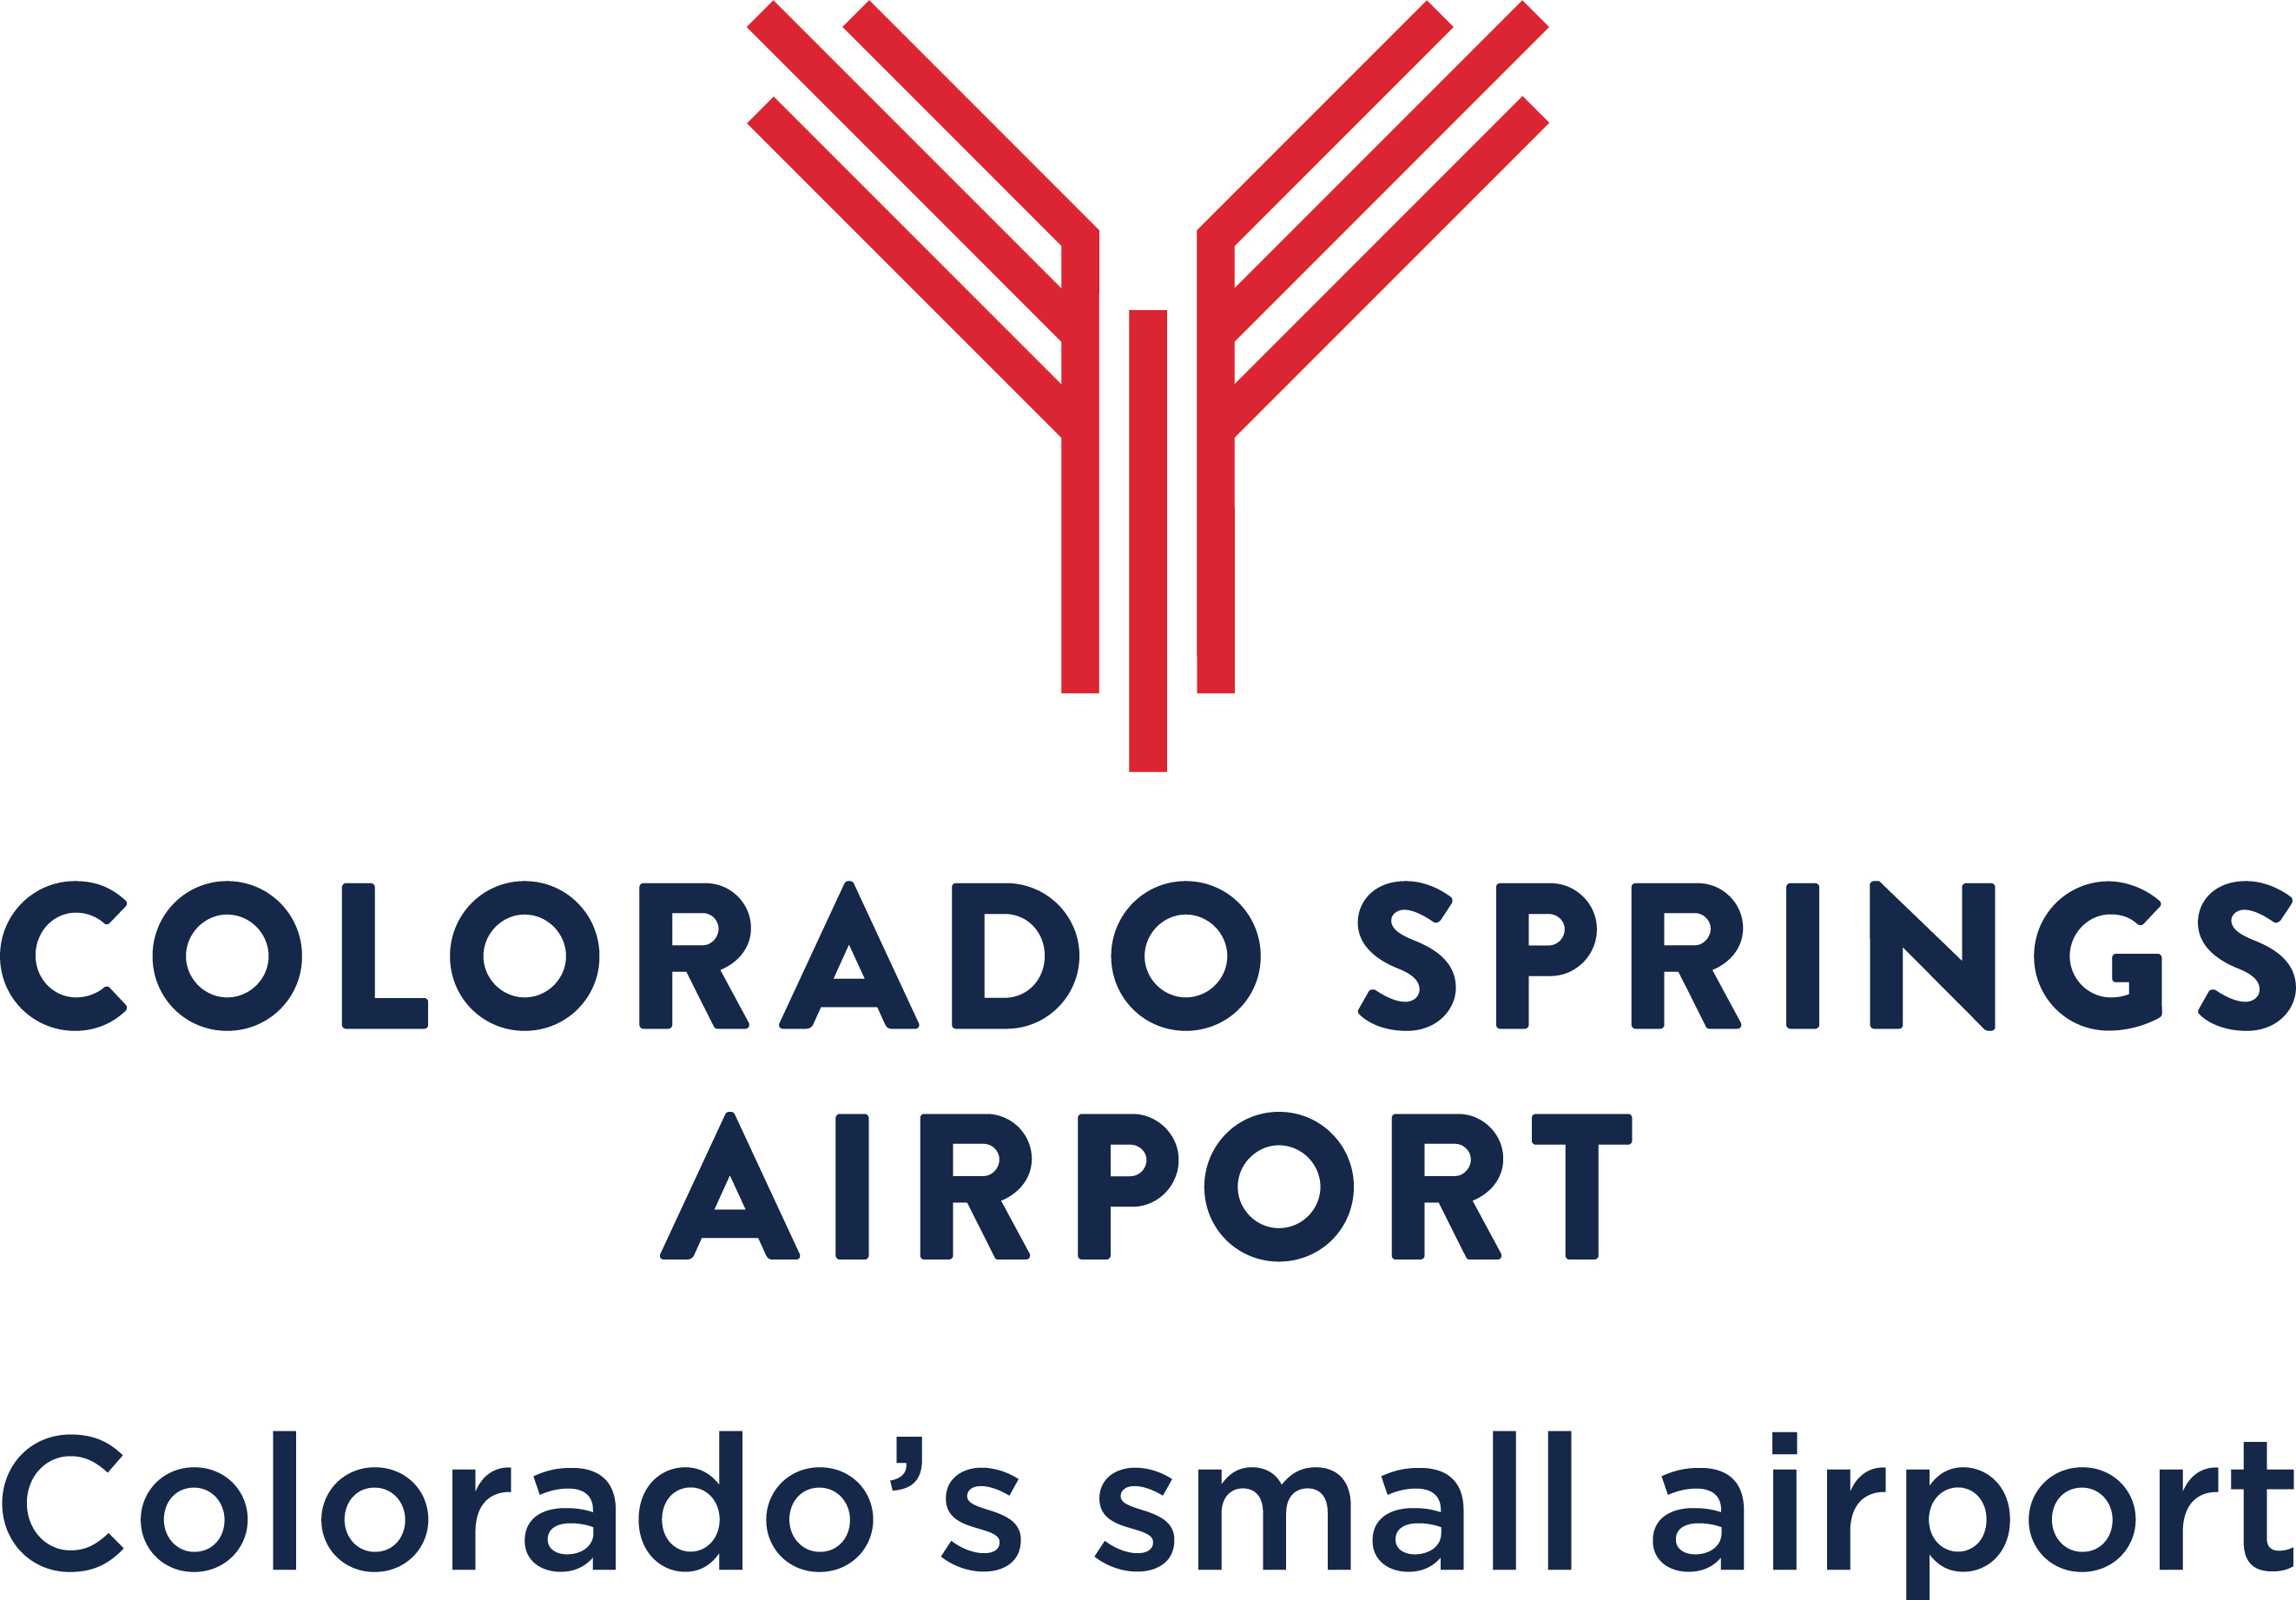 Colorado Springs airport logo